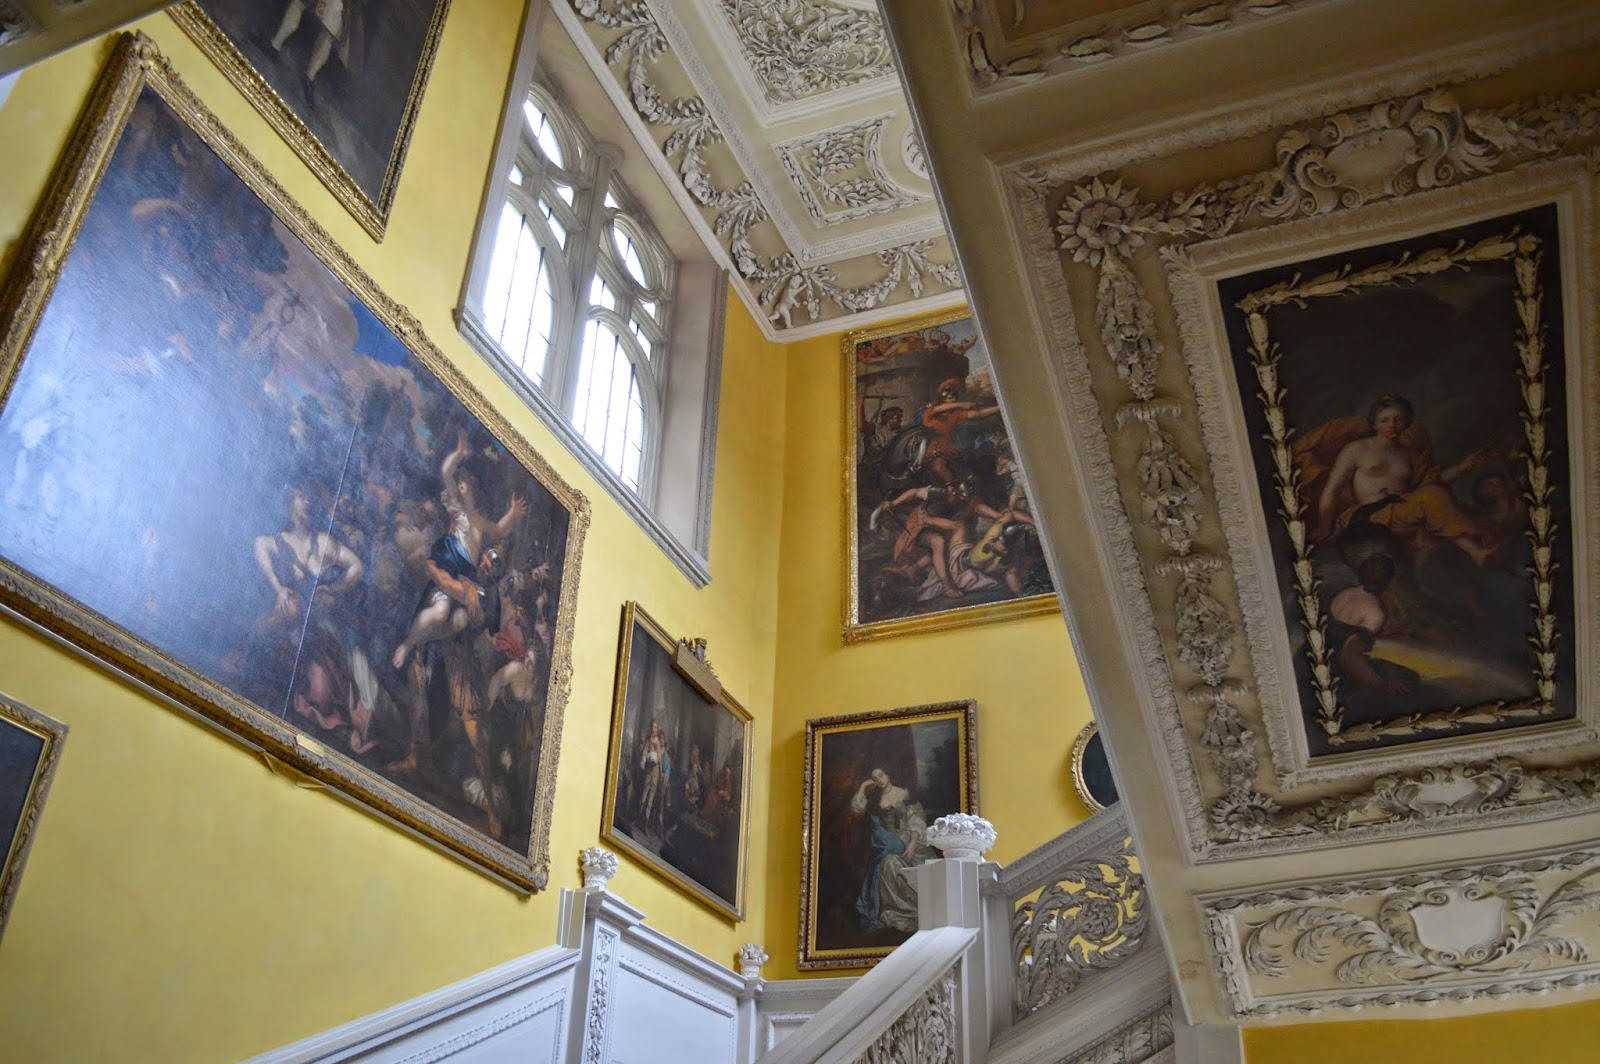 staircase, mythology, platerwork, pictures, murals,Sudbury Hall, photos, photograph, historical properties, BBC Pride and Prejudice film location, National Trust, review, derby, 17th century, inside, outside, visit